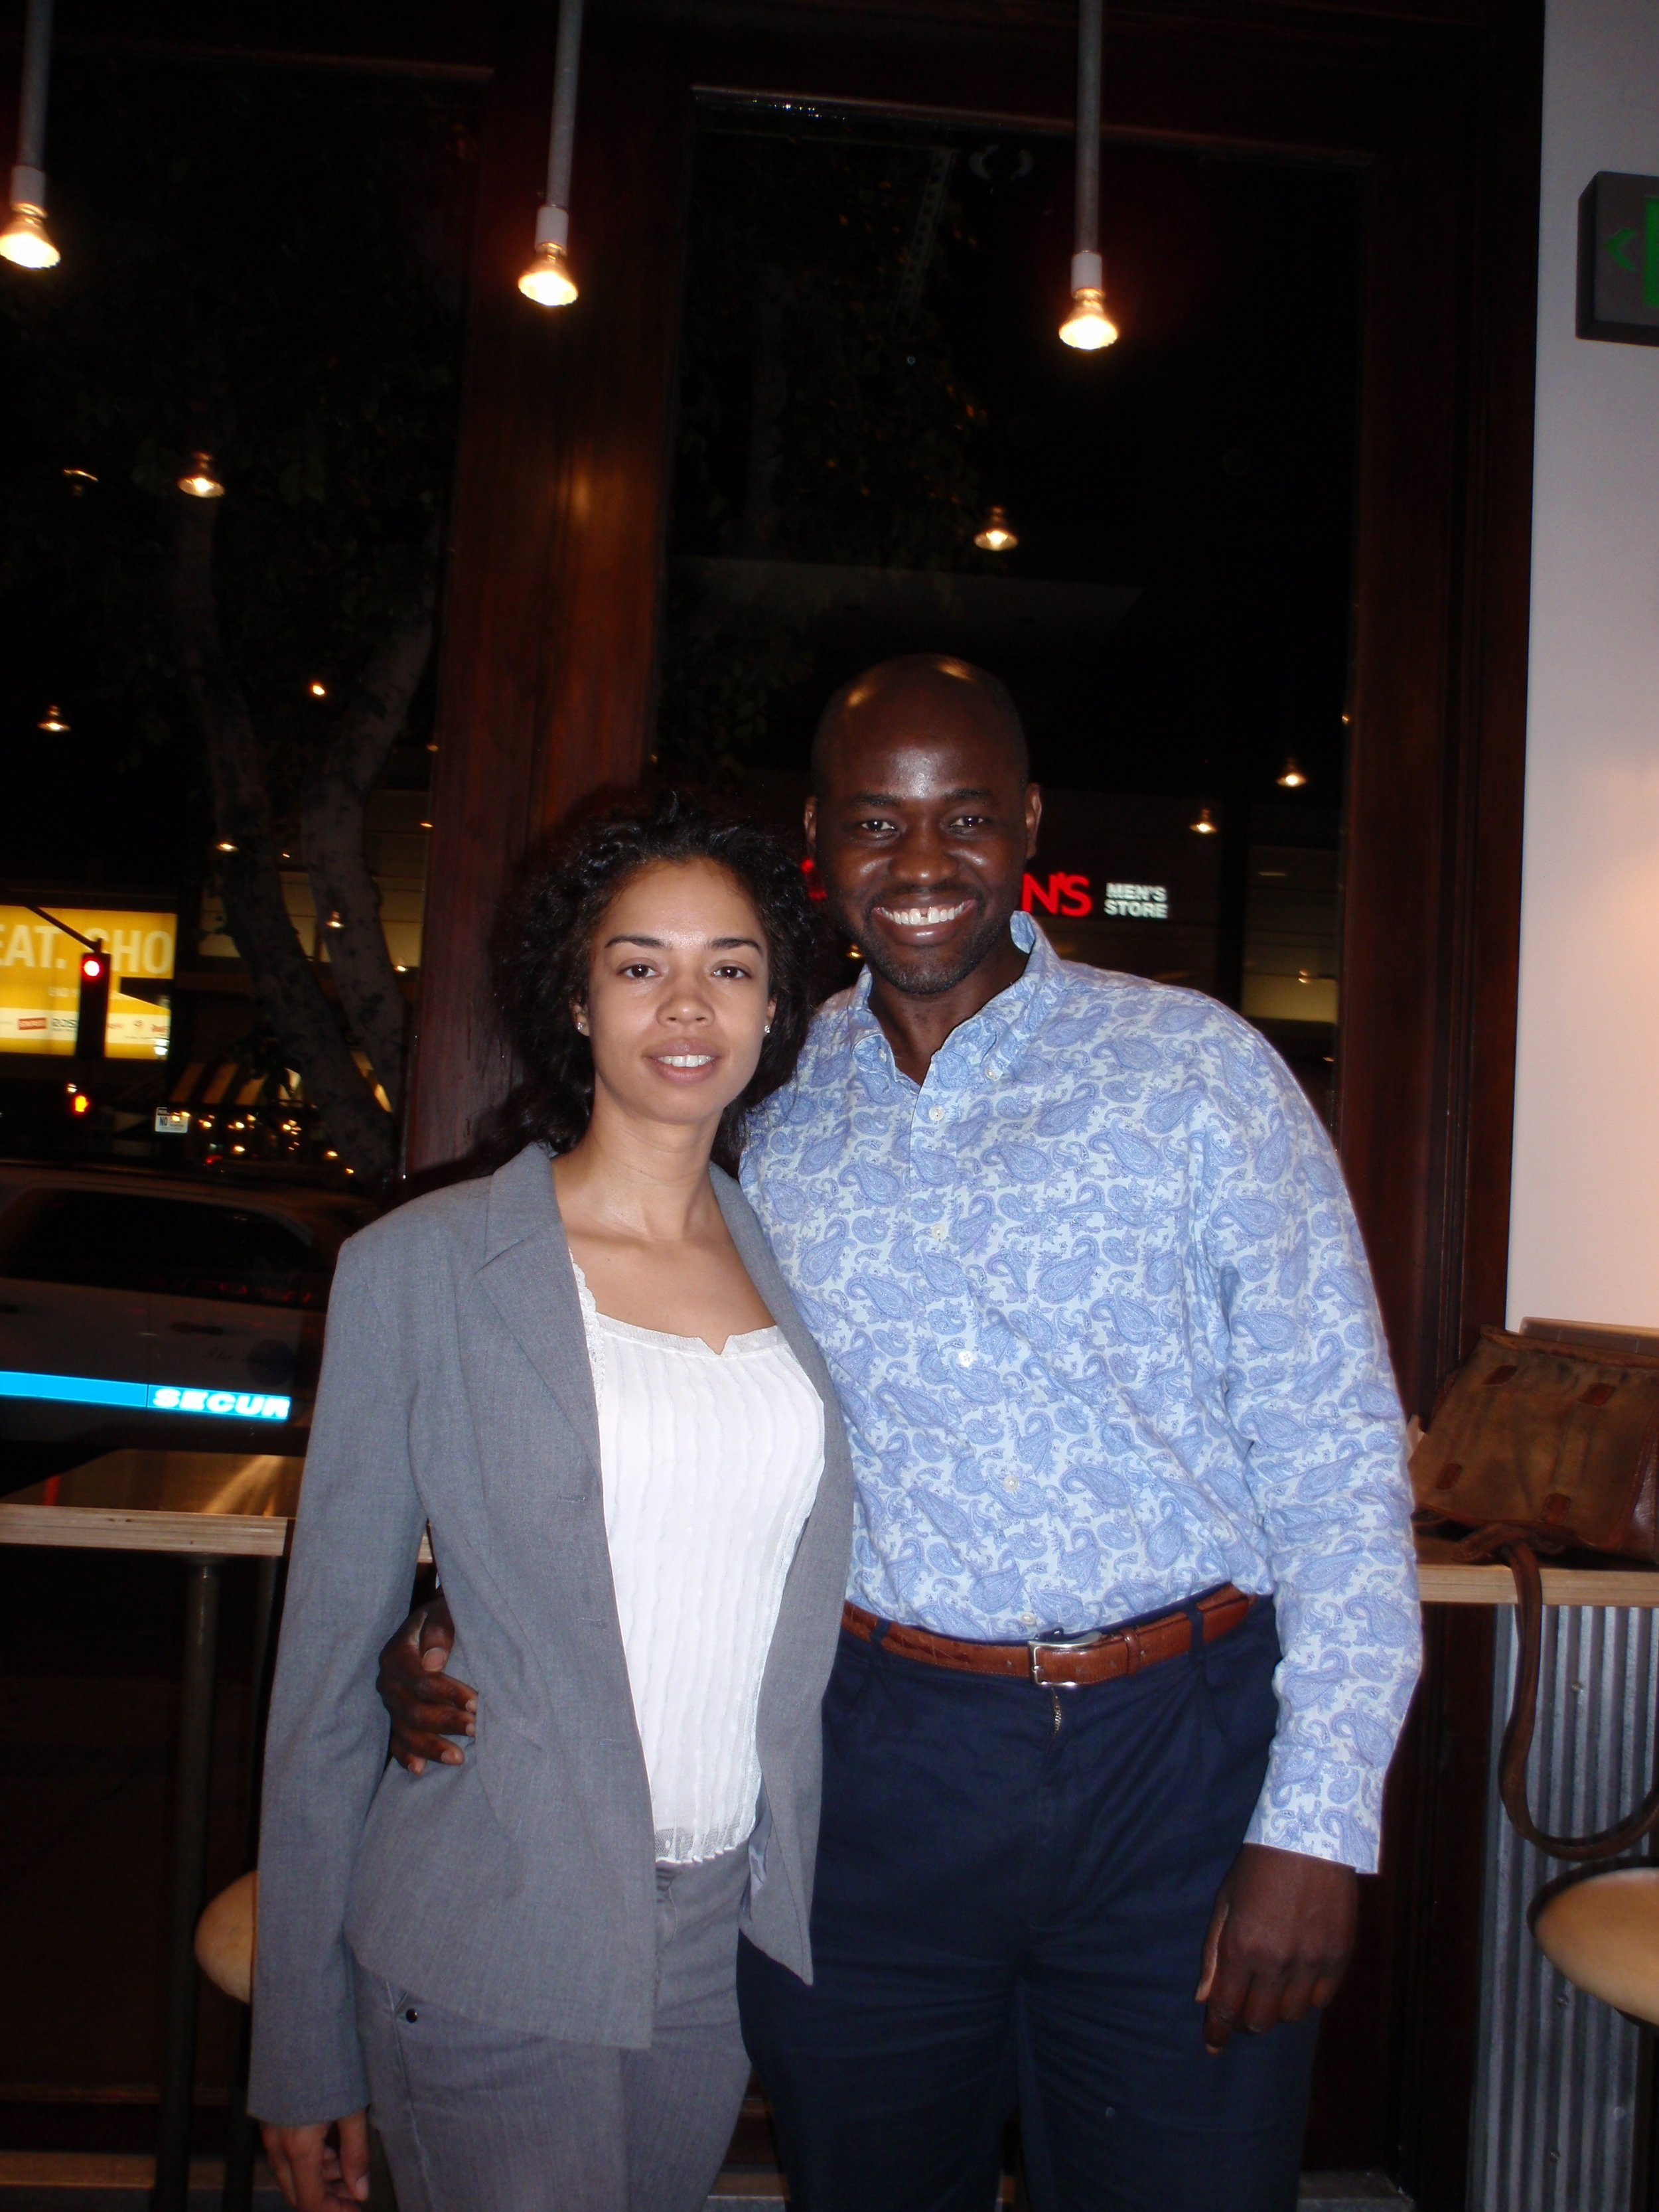 LOS ANGELES, November, 17, 2009: I catch up with my friend, Tanya Young, a talented television writer who I first met in my old neighborhood where she attended Columbia University.